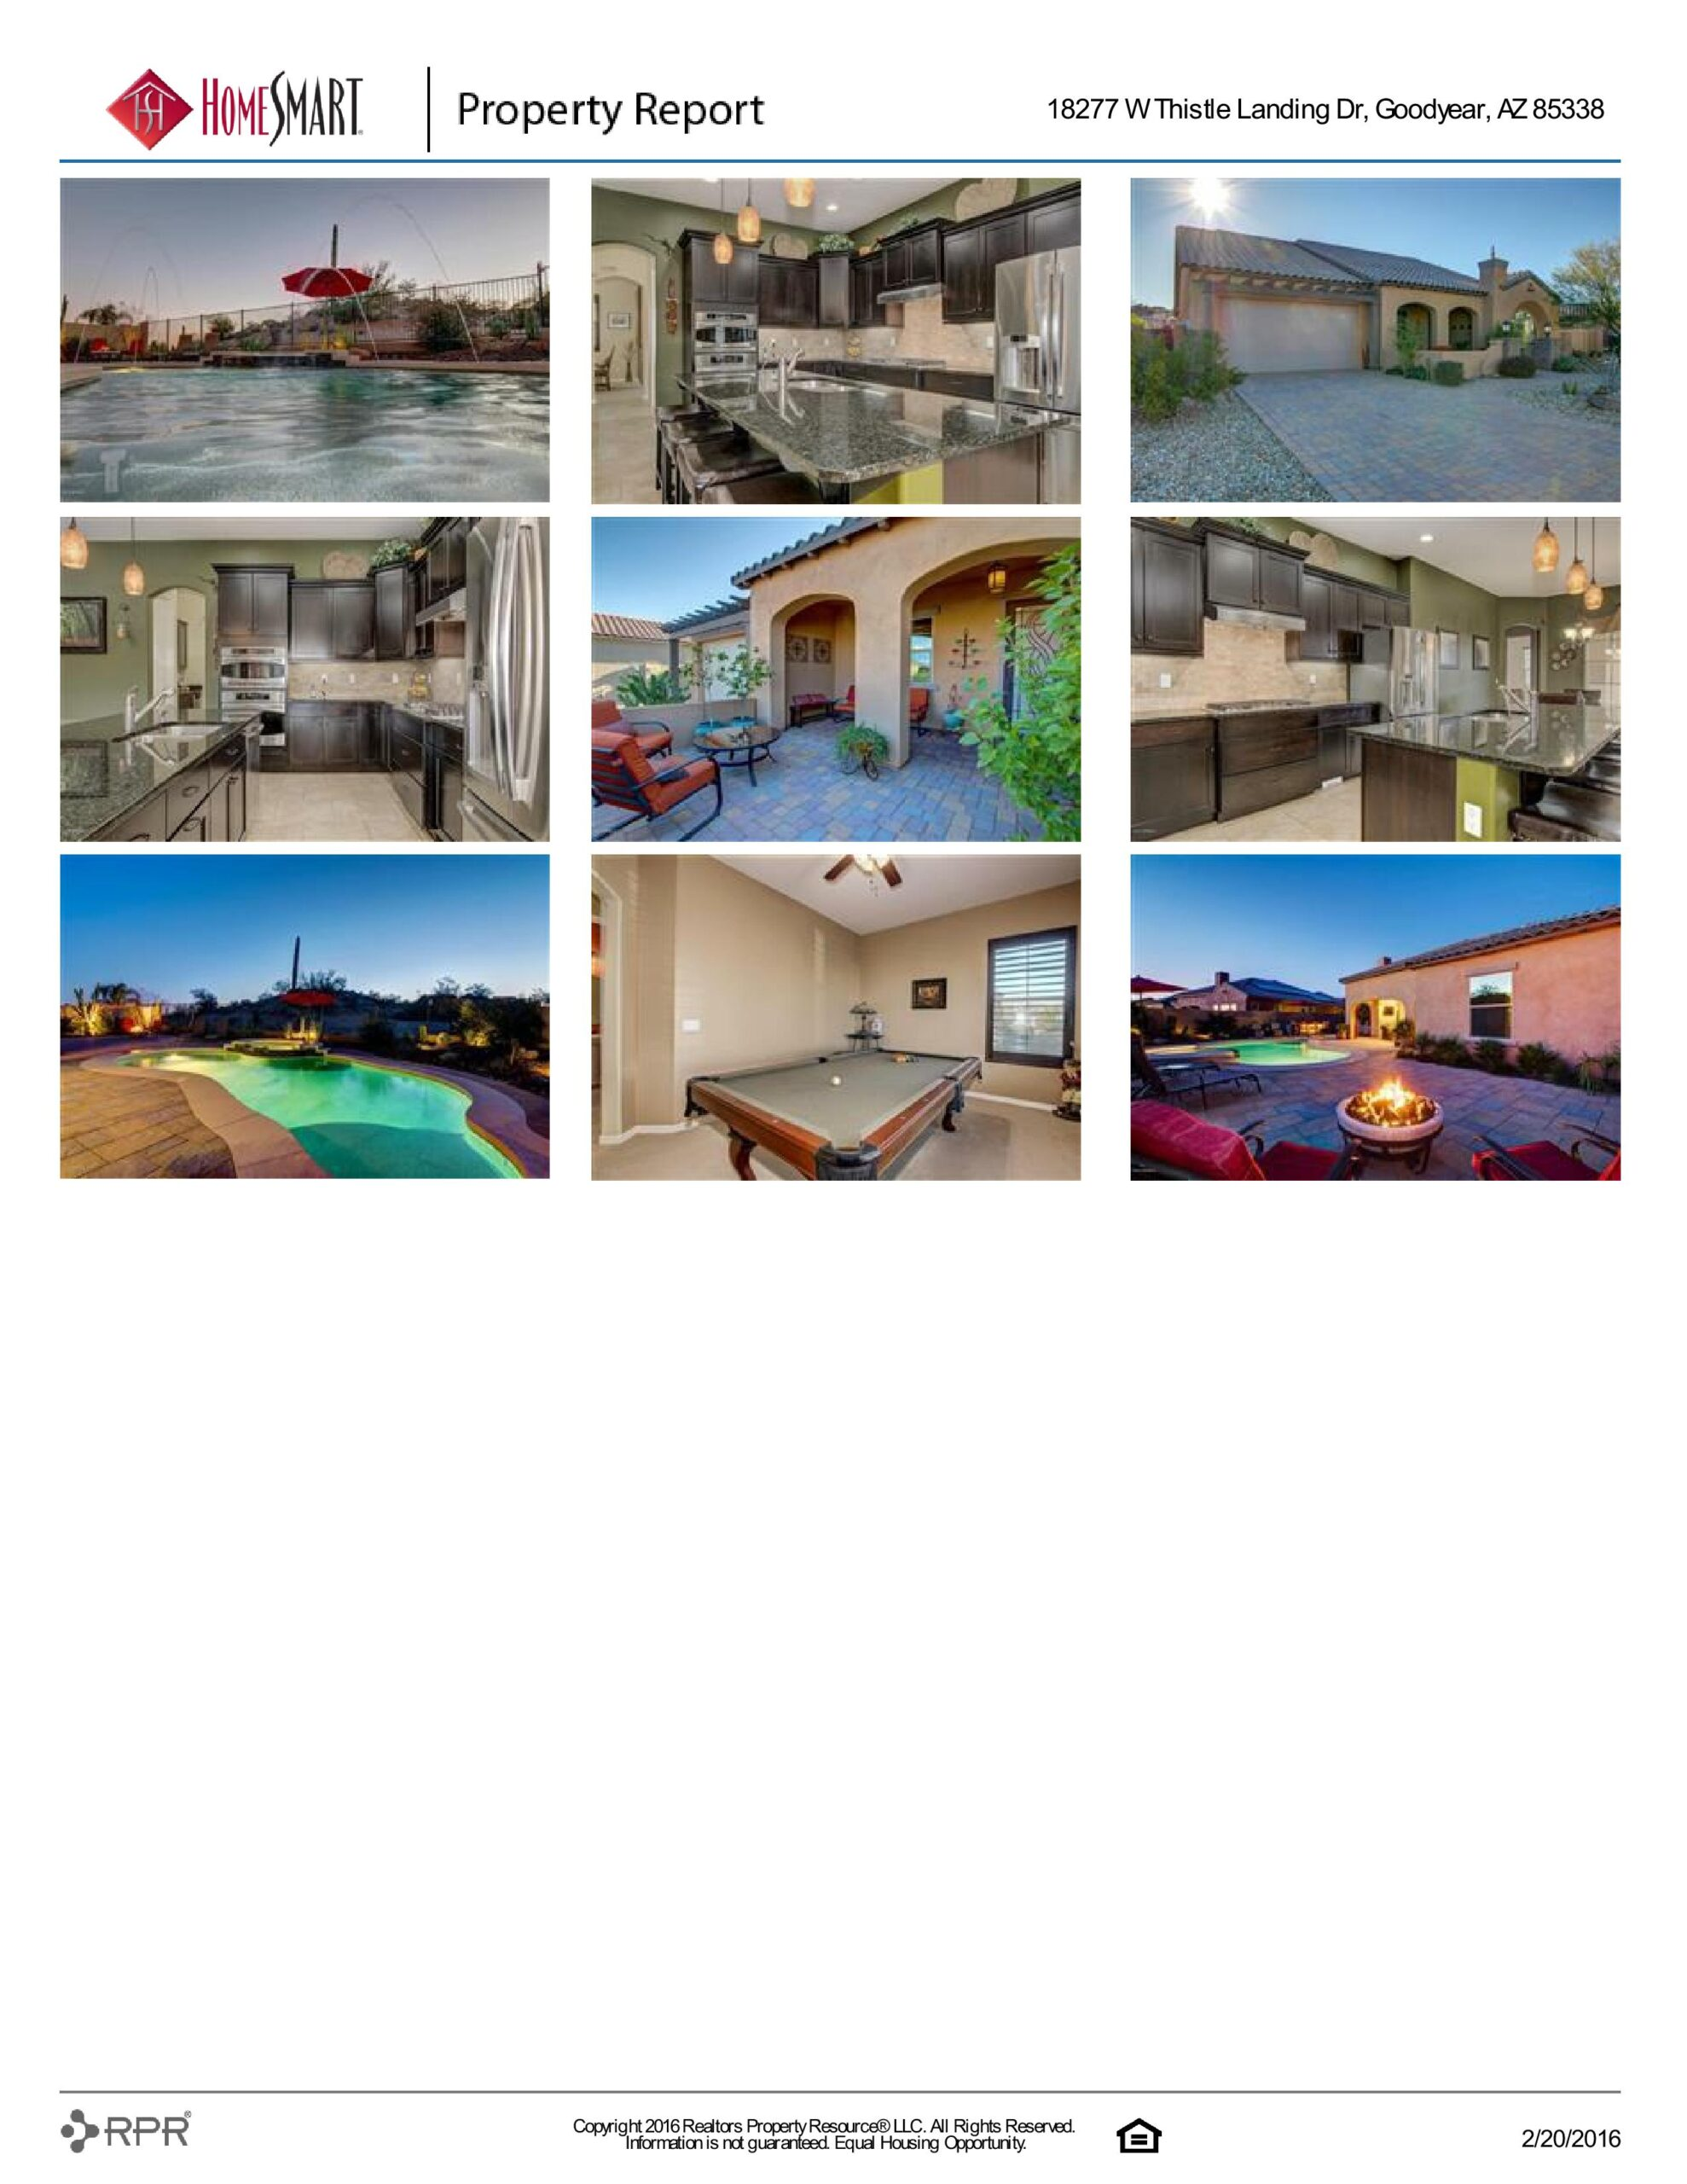 18277 W THISTLE LANDING DR PROPERTY REPORT-page-007